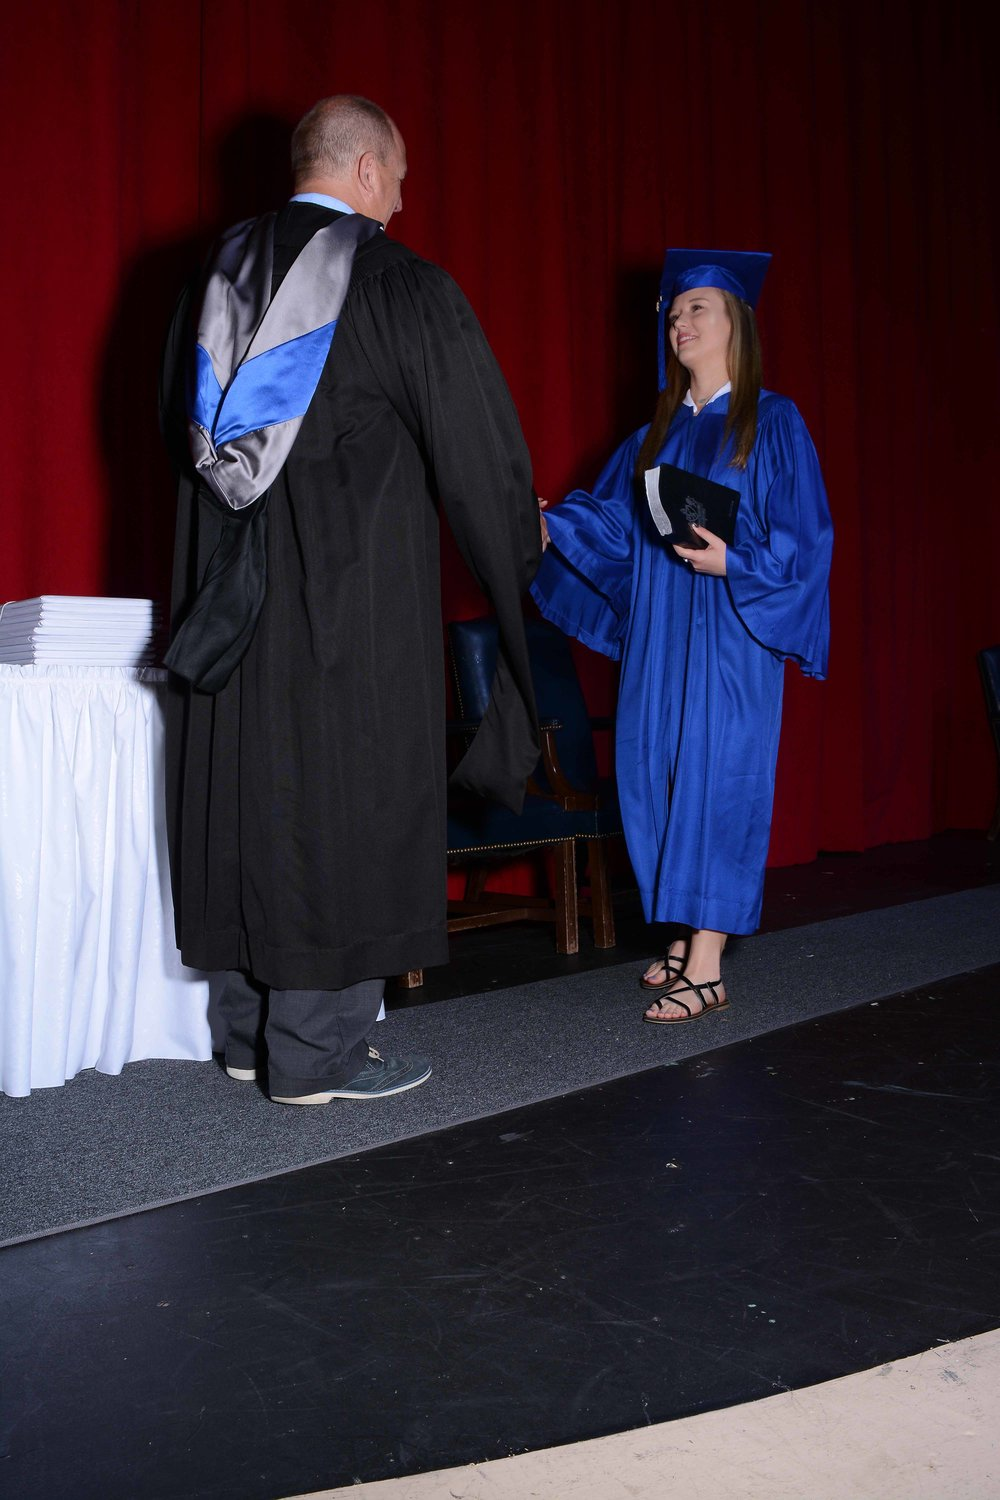 May14 Commencement27.jpg